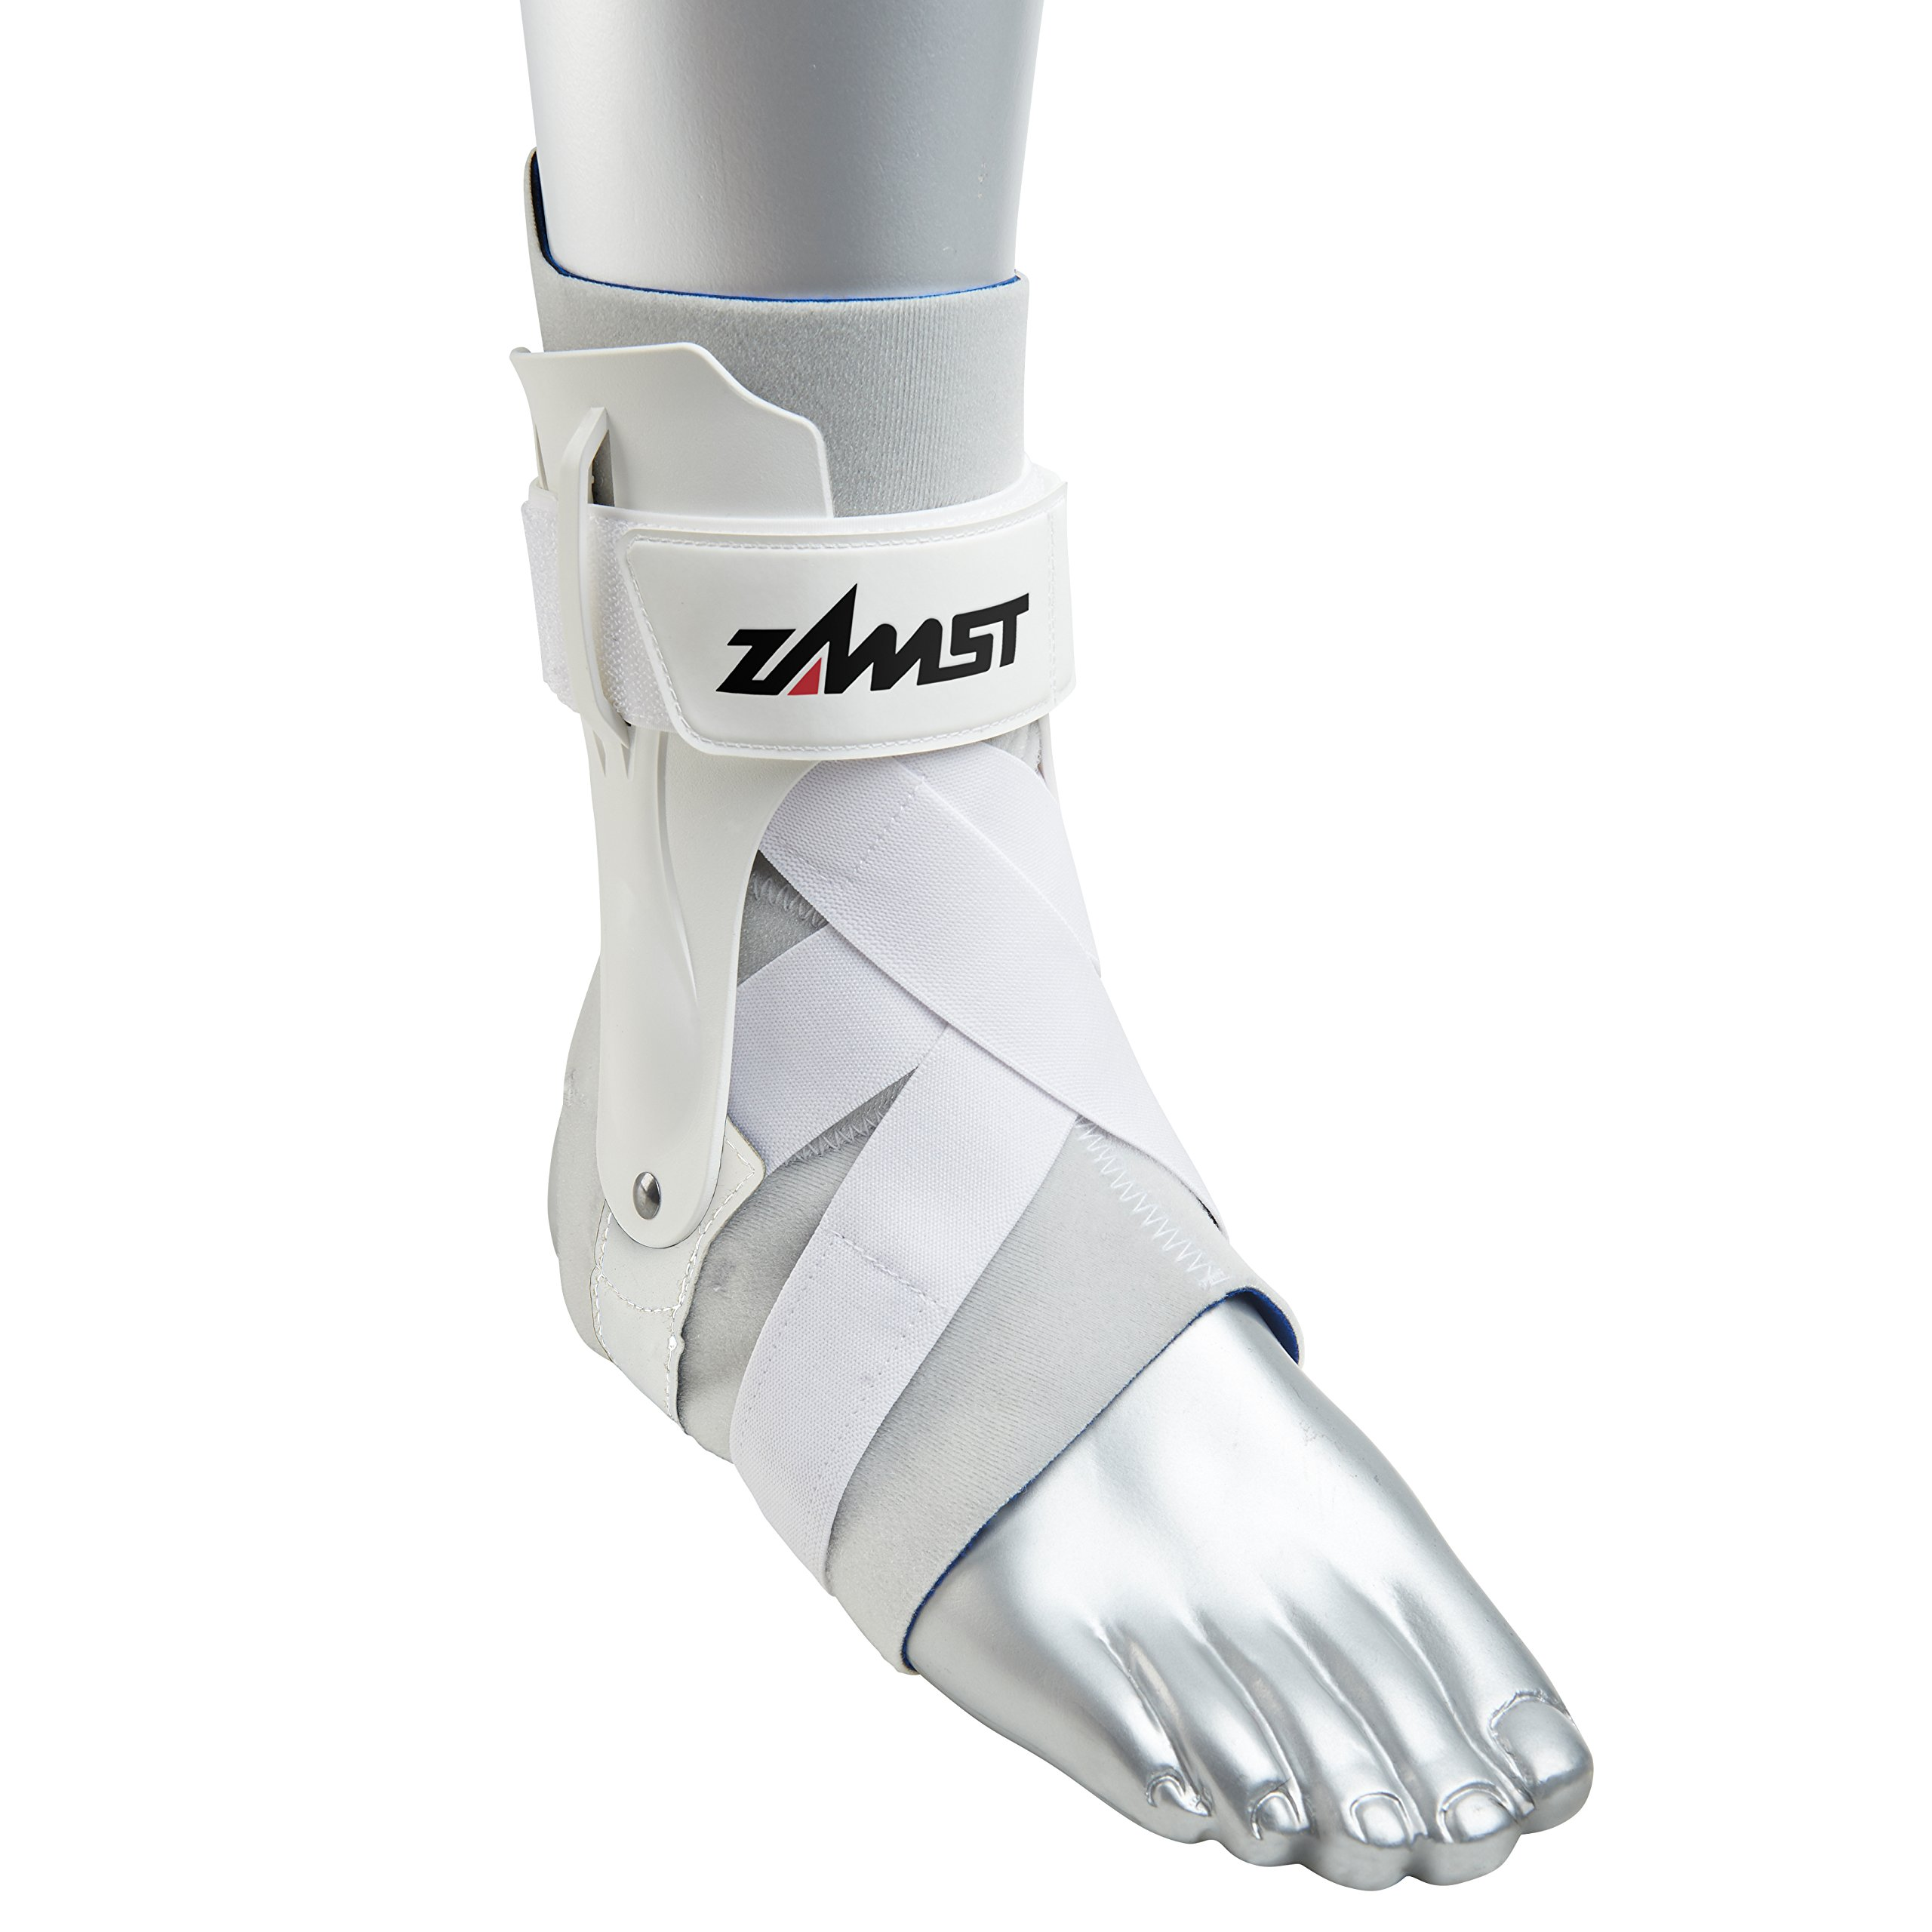 Zamst A2-DX Strong Support Ankle Brace, White, Small - Left by Zamst